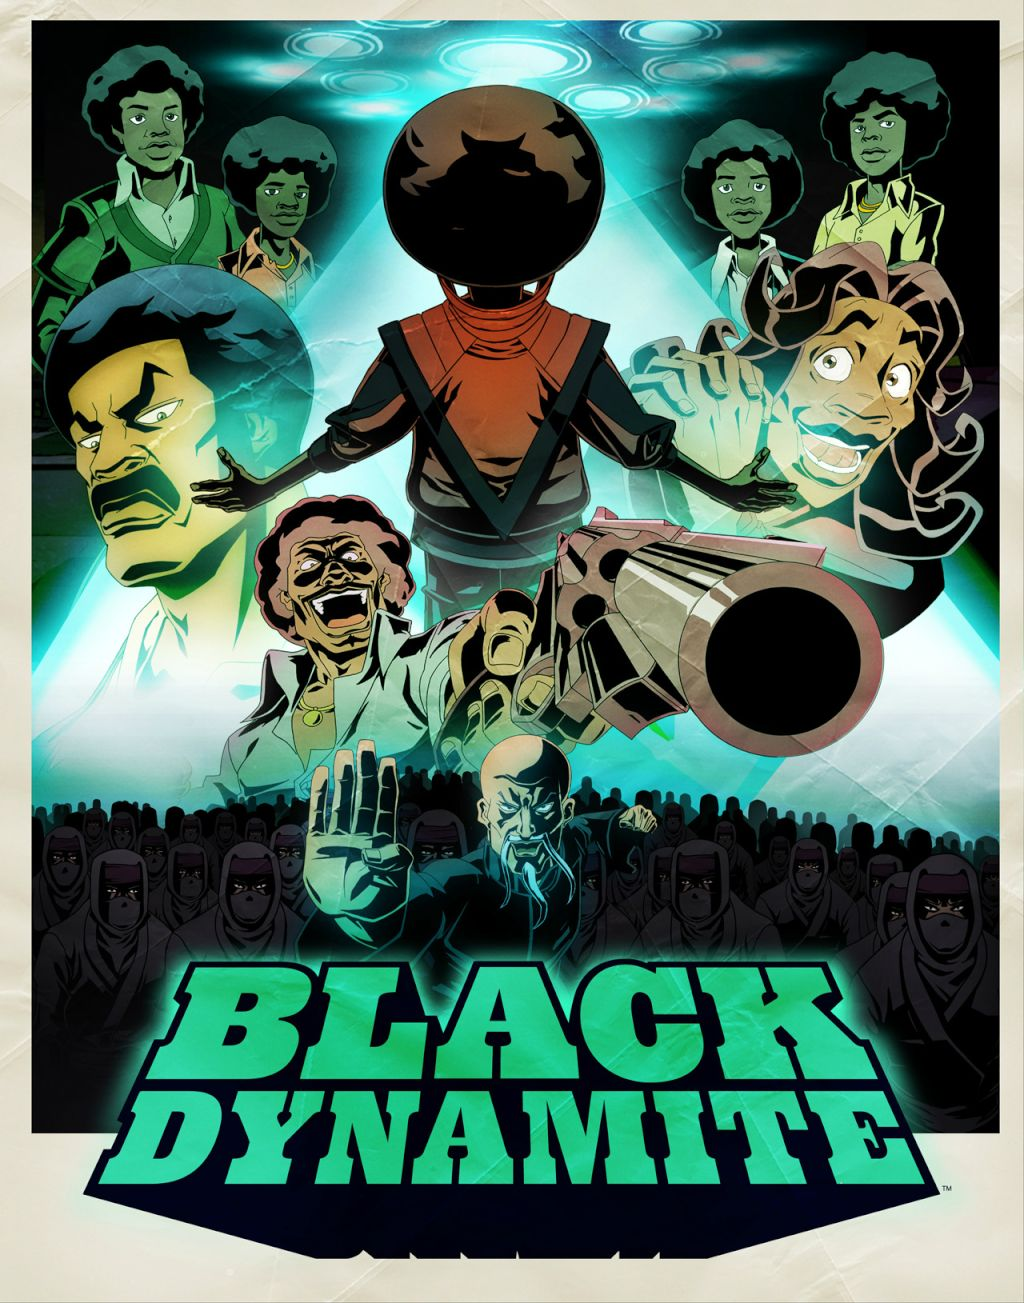 BLACK DYNAMITE EPISODE PREMIERE #1 on ADULT SWIM!